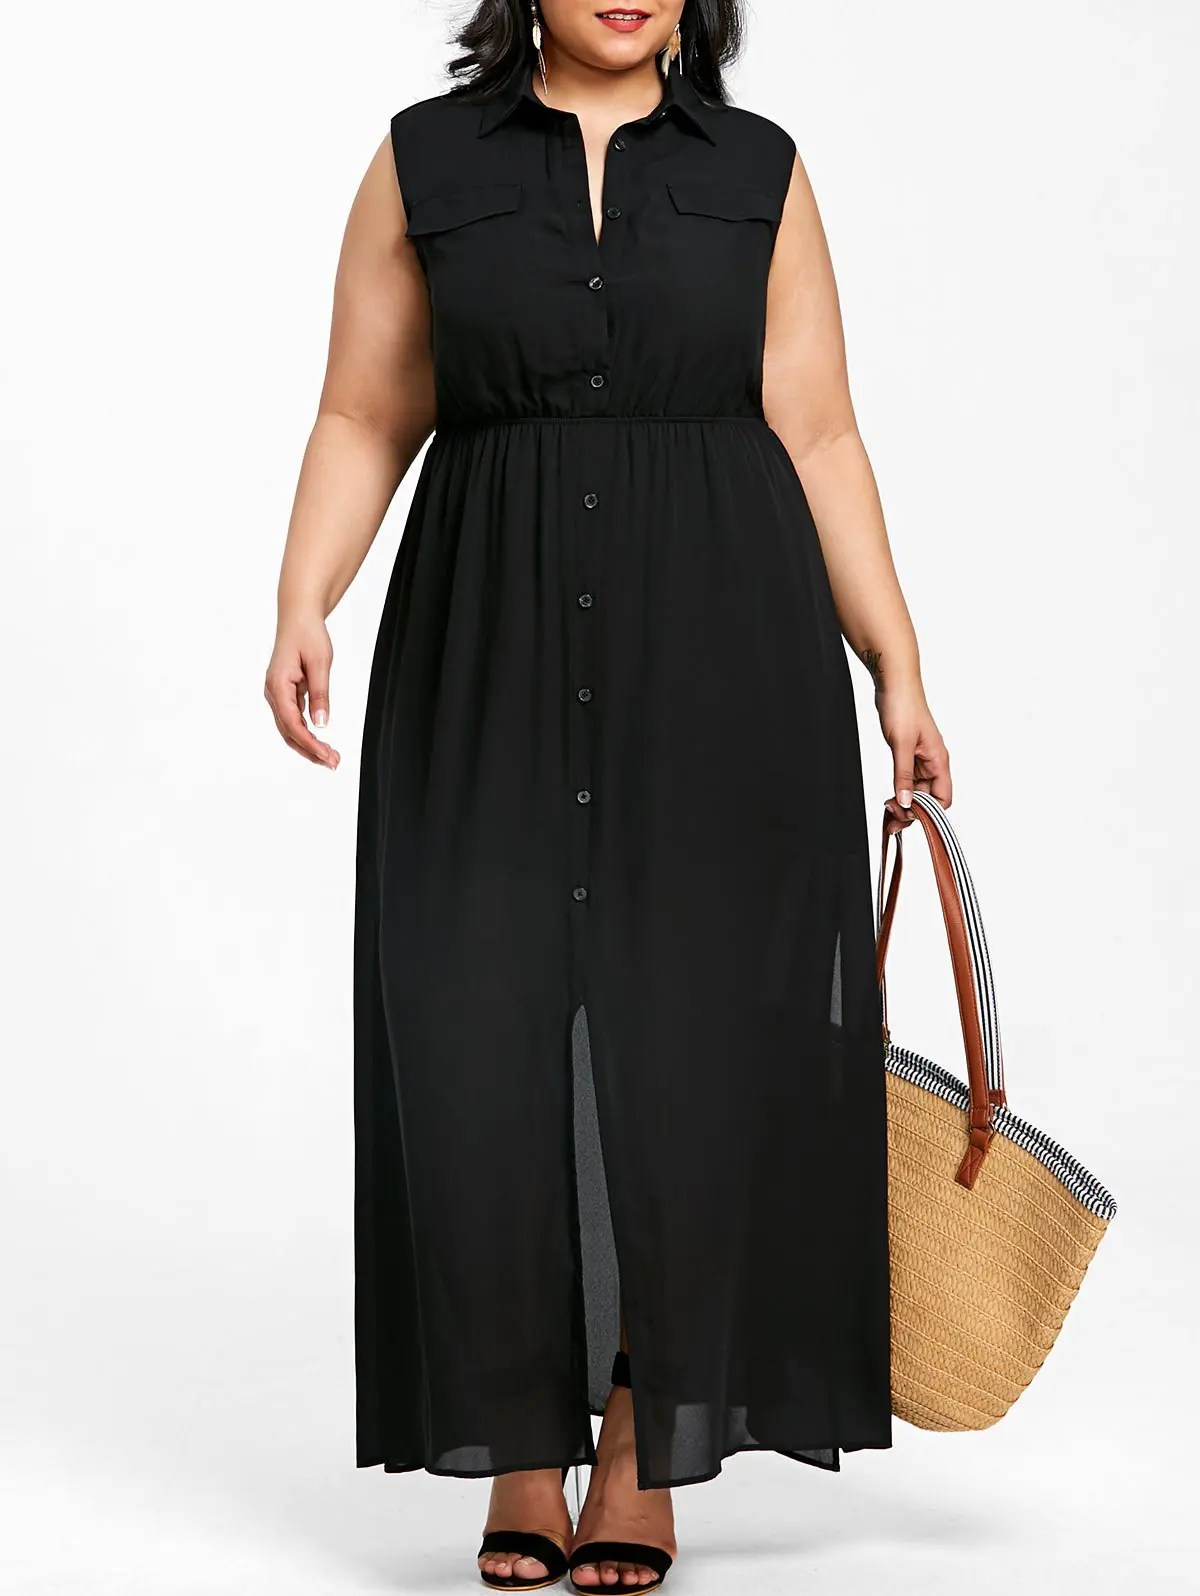 Black 5xl Plus Size Sleeveless Flowing Shirt Dress